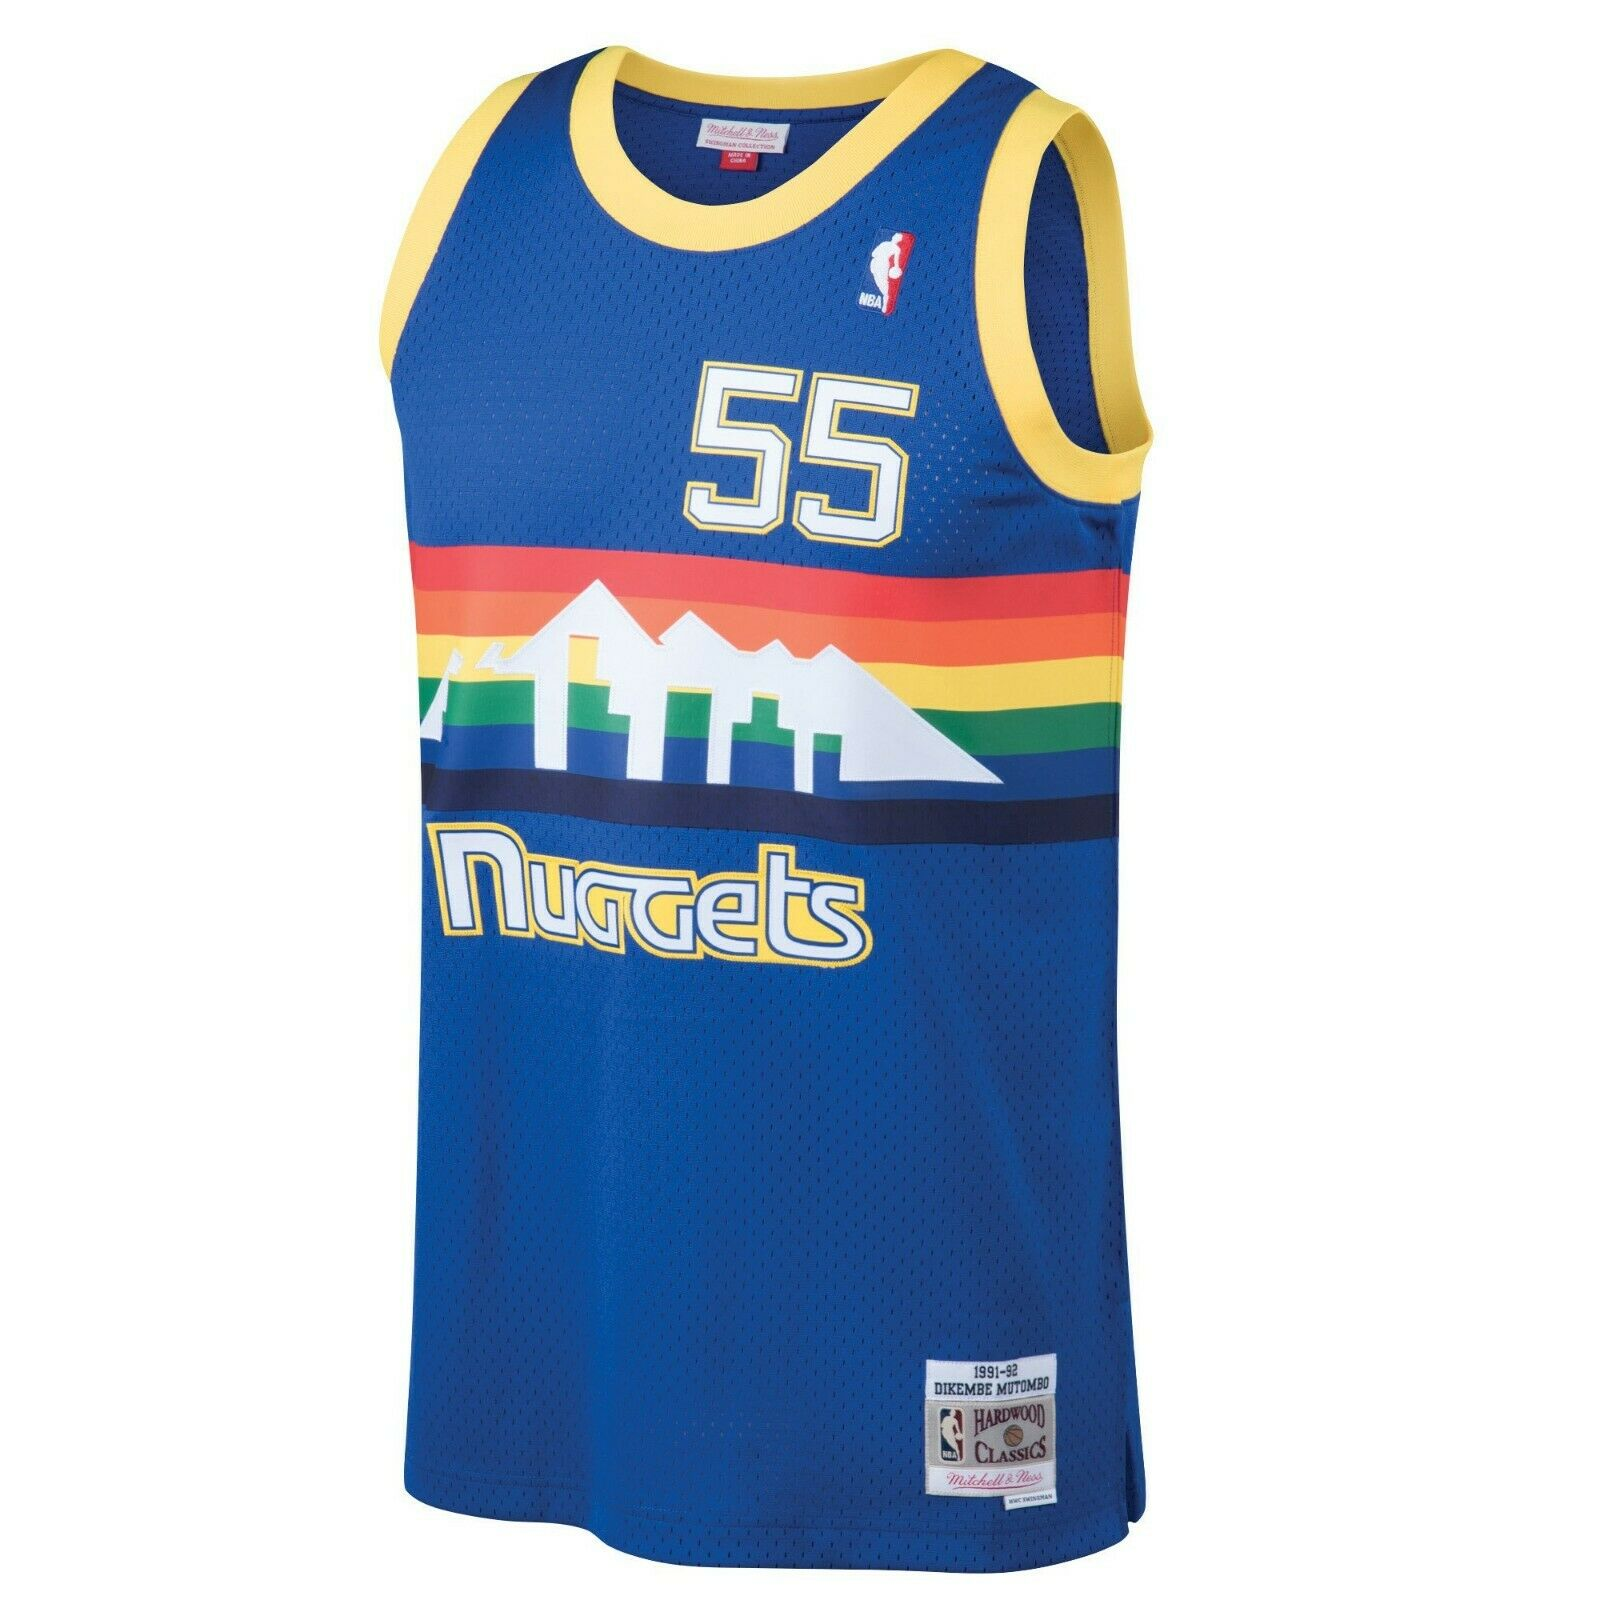 buy popular 66a68 70fd1 Details about Mitchell & Ness NBA Denver Nuggets #55 Mutombo Swingman Royal  Blue Jersey